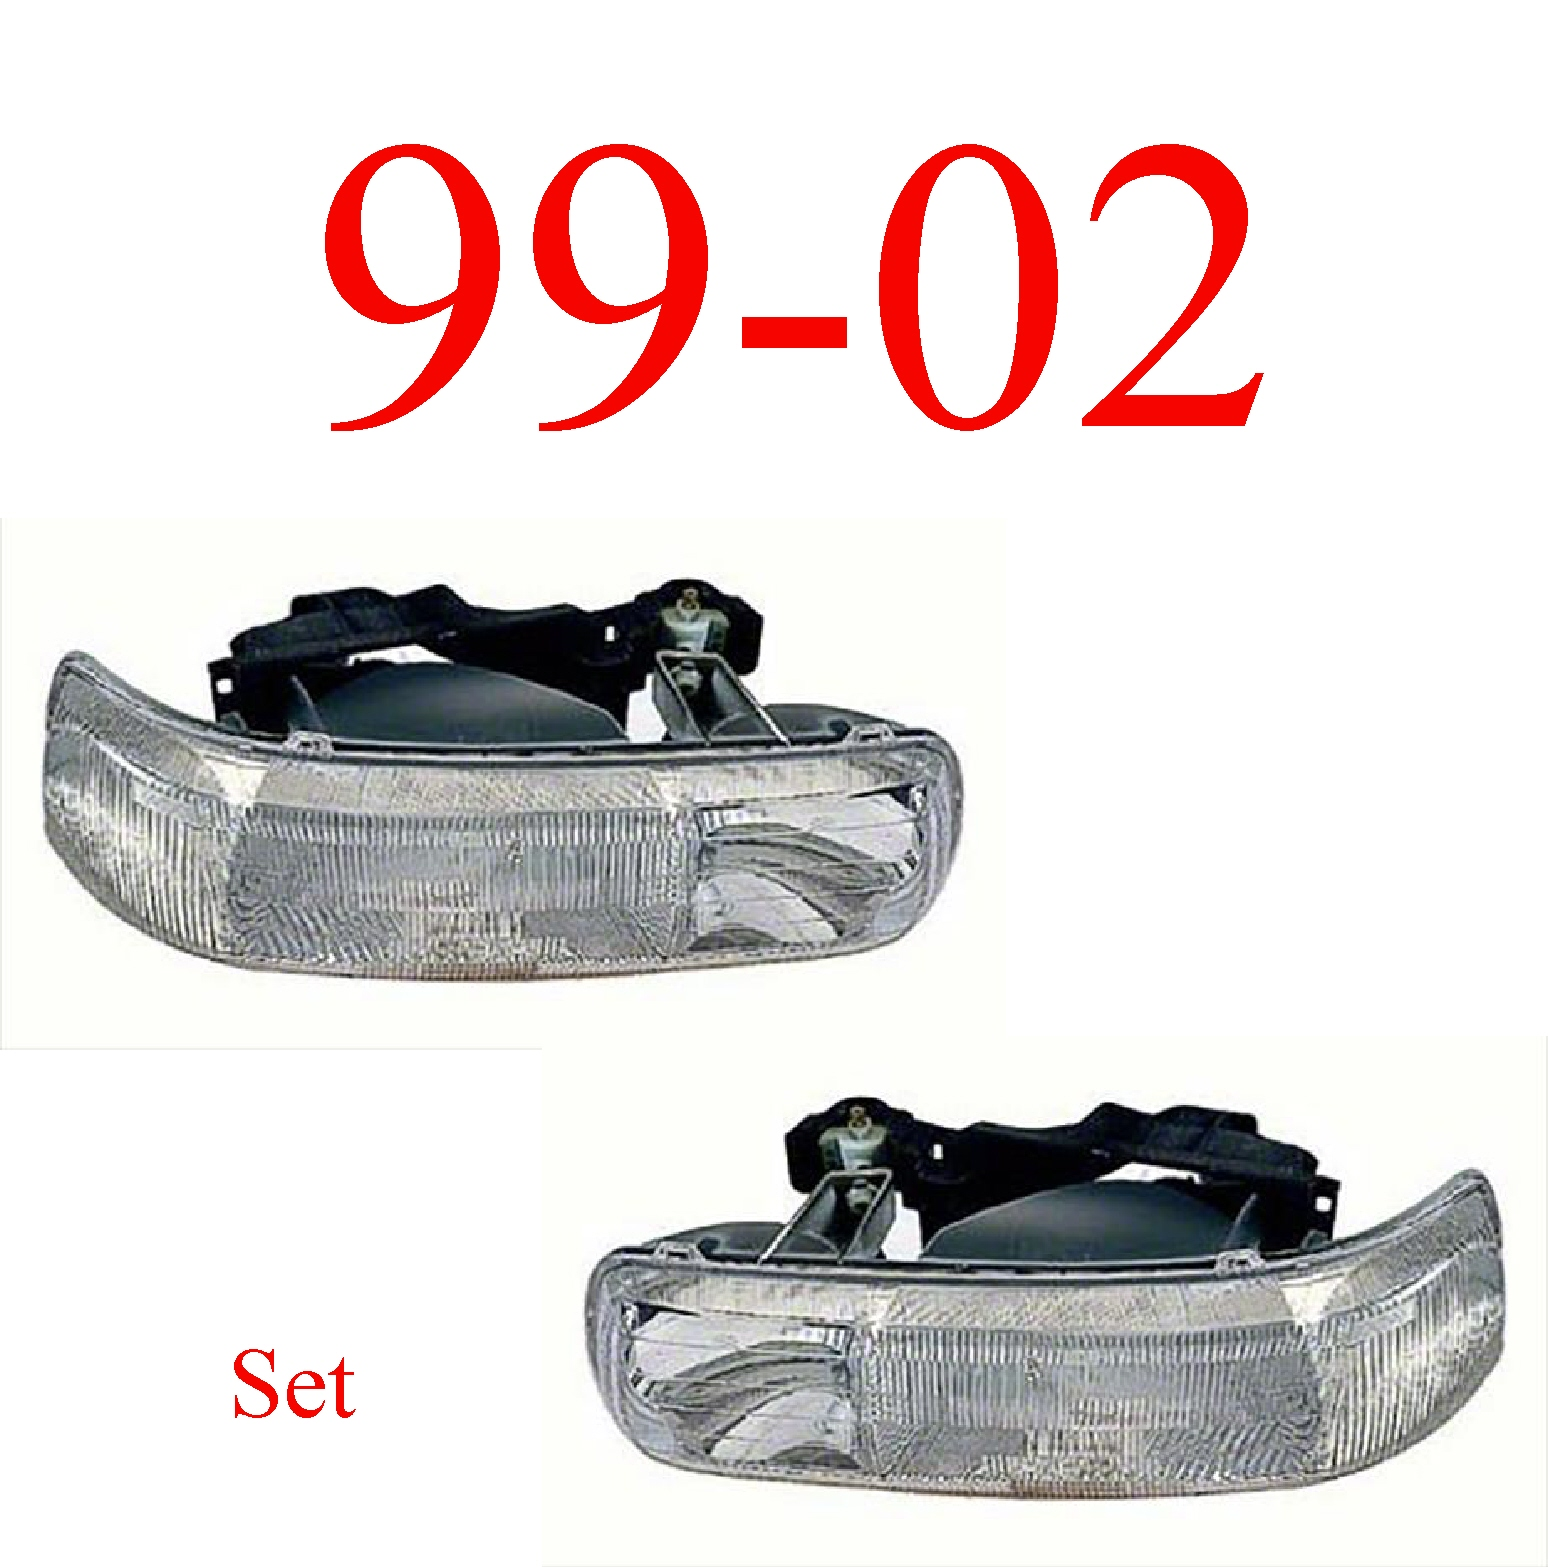 99-02 Chevy Head Light Set Assembly